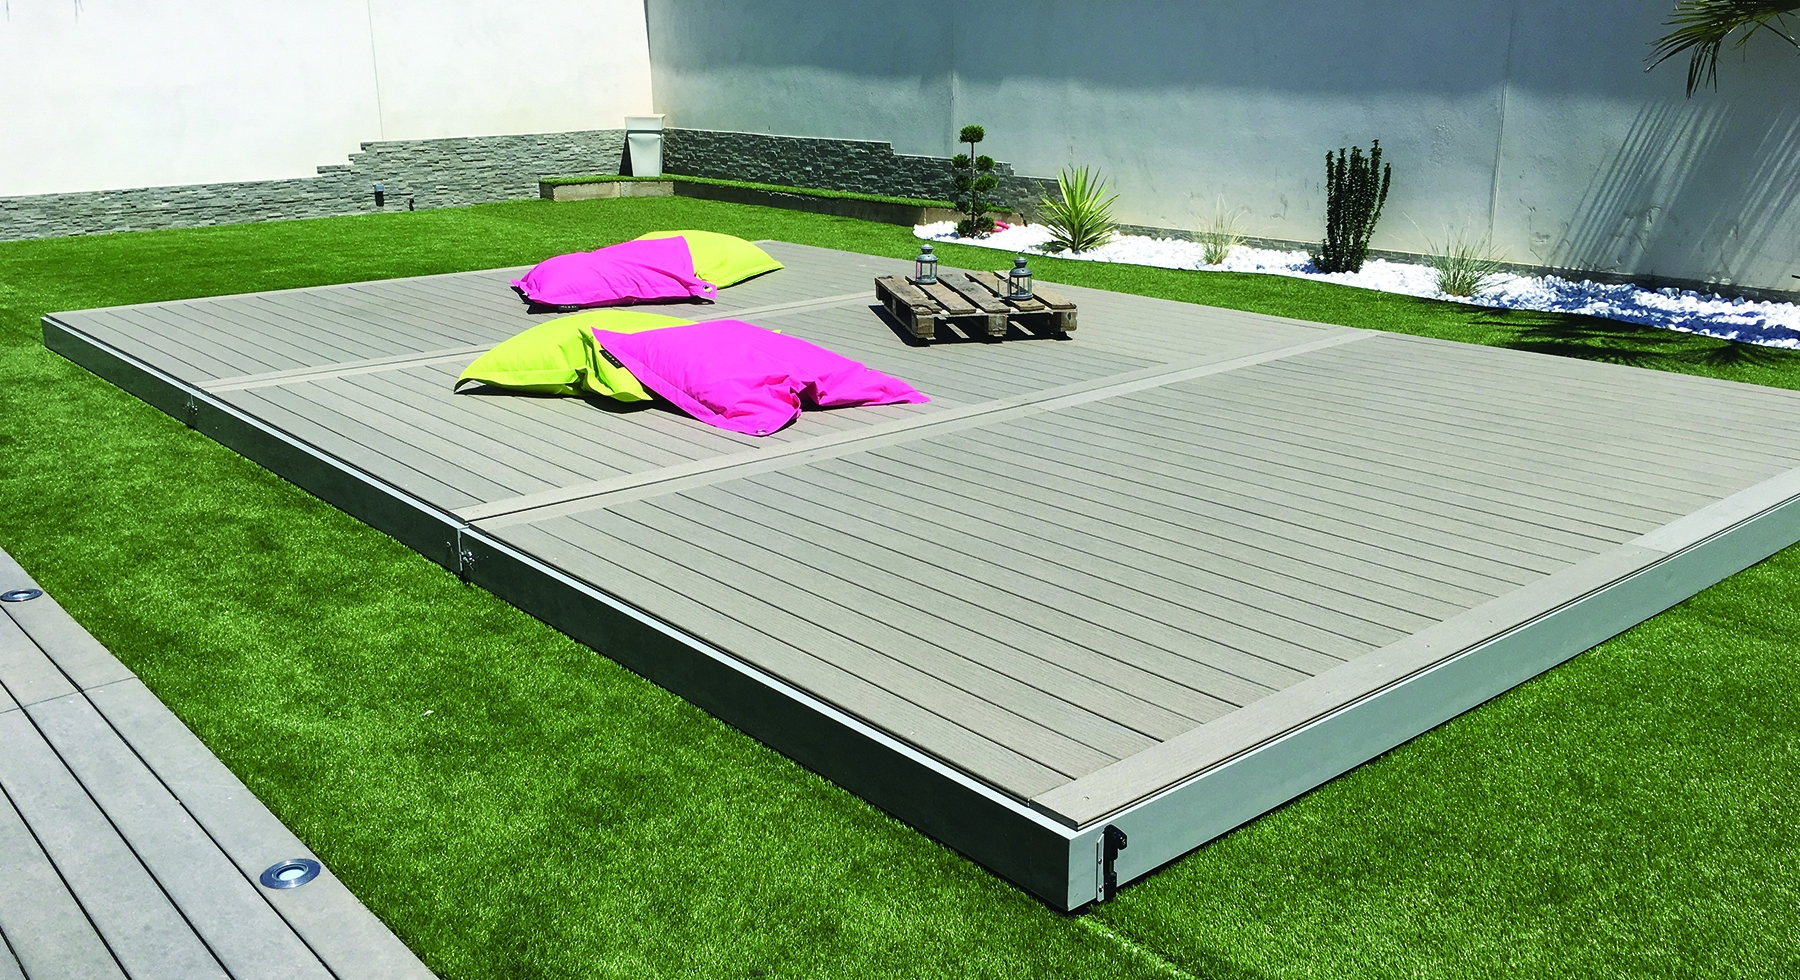 Terrasse mobile sur rails Stilys